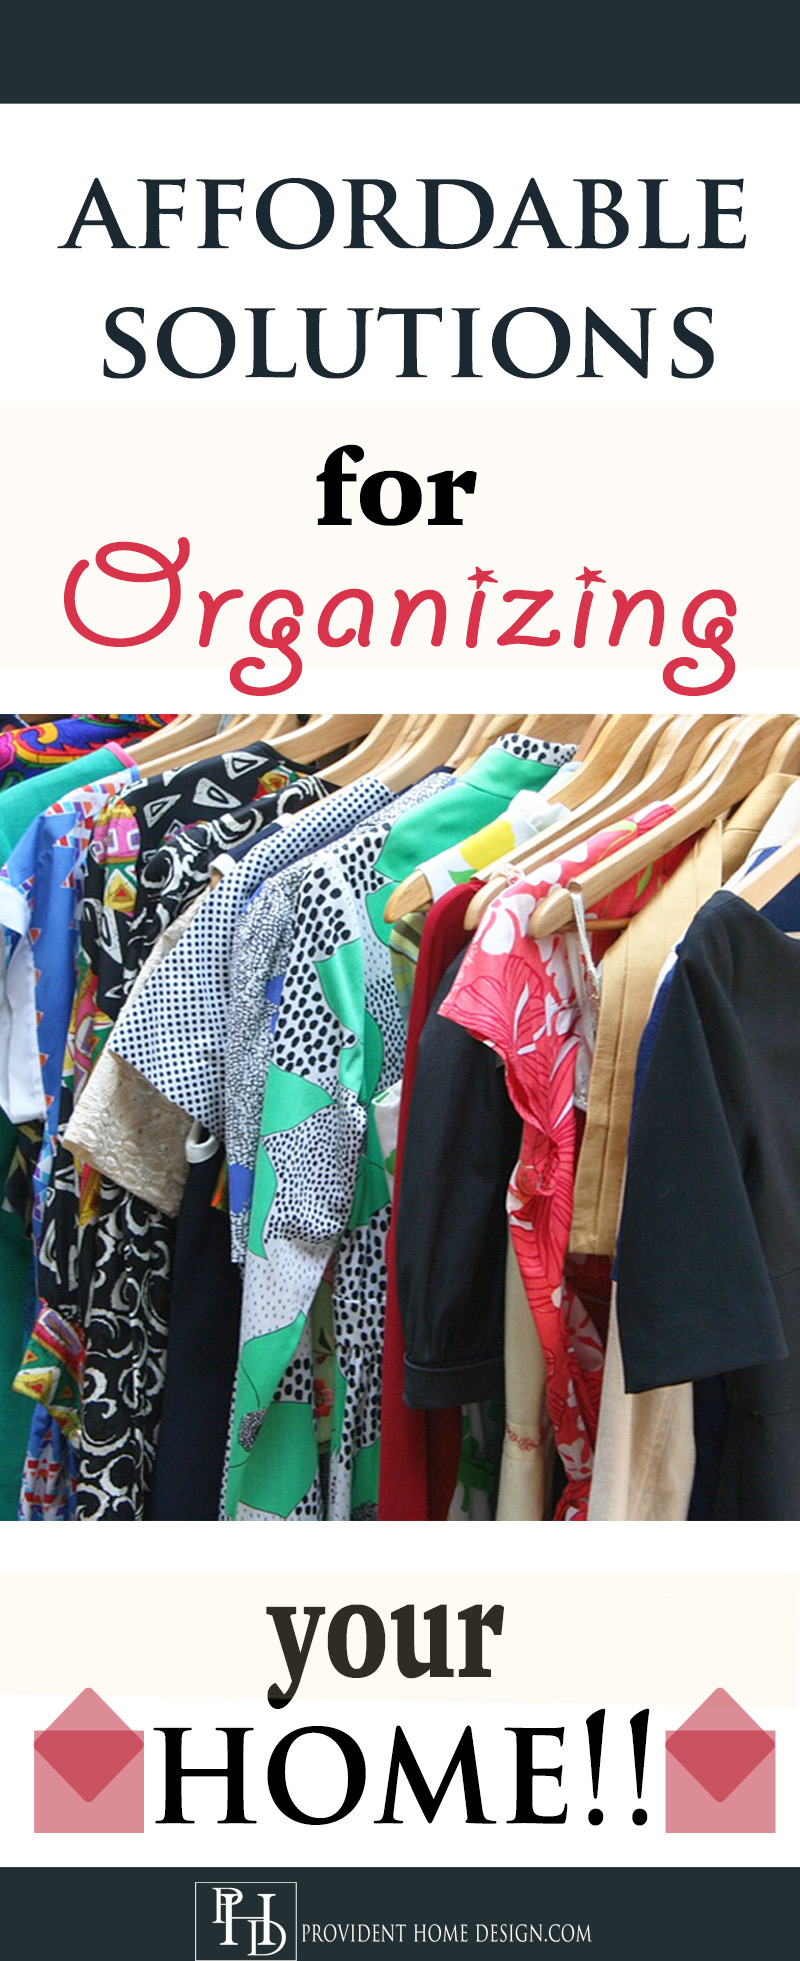 How to Organize you Home